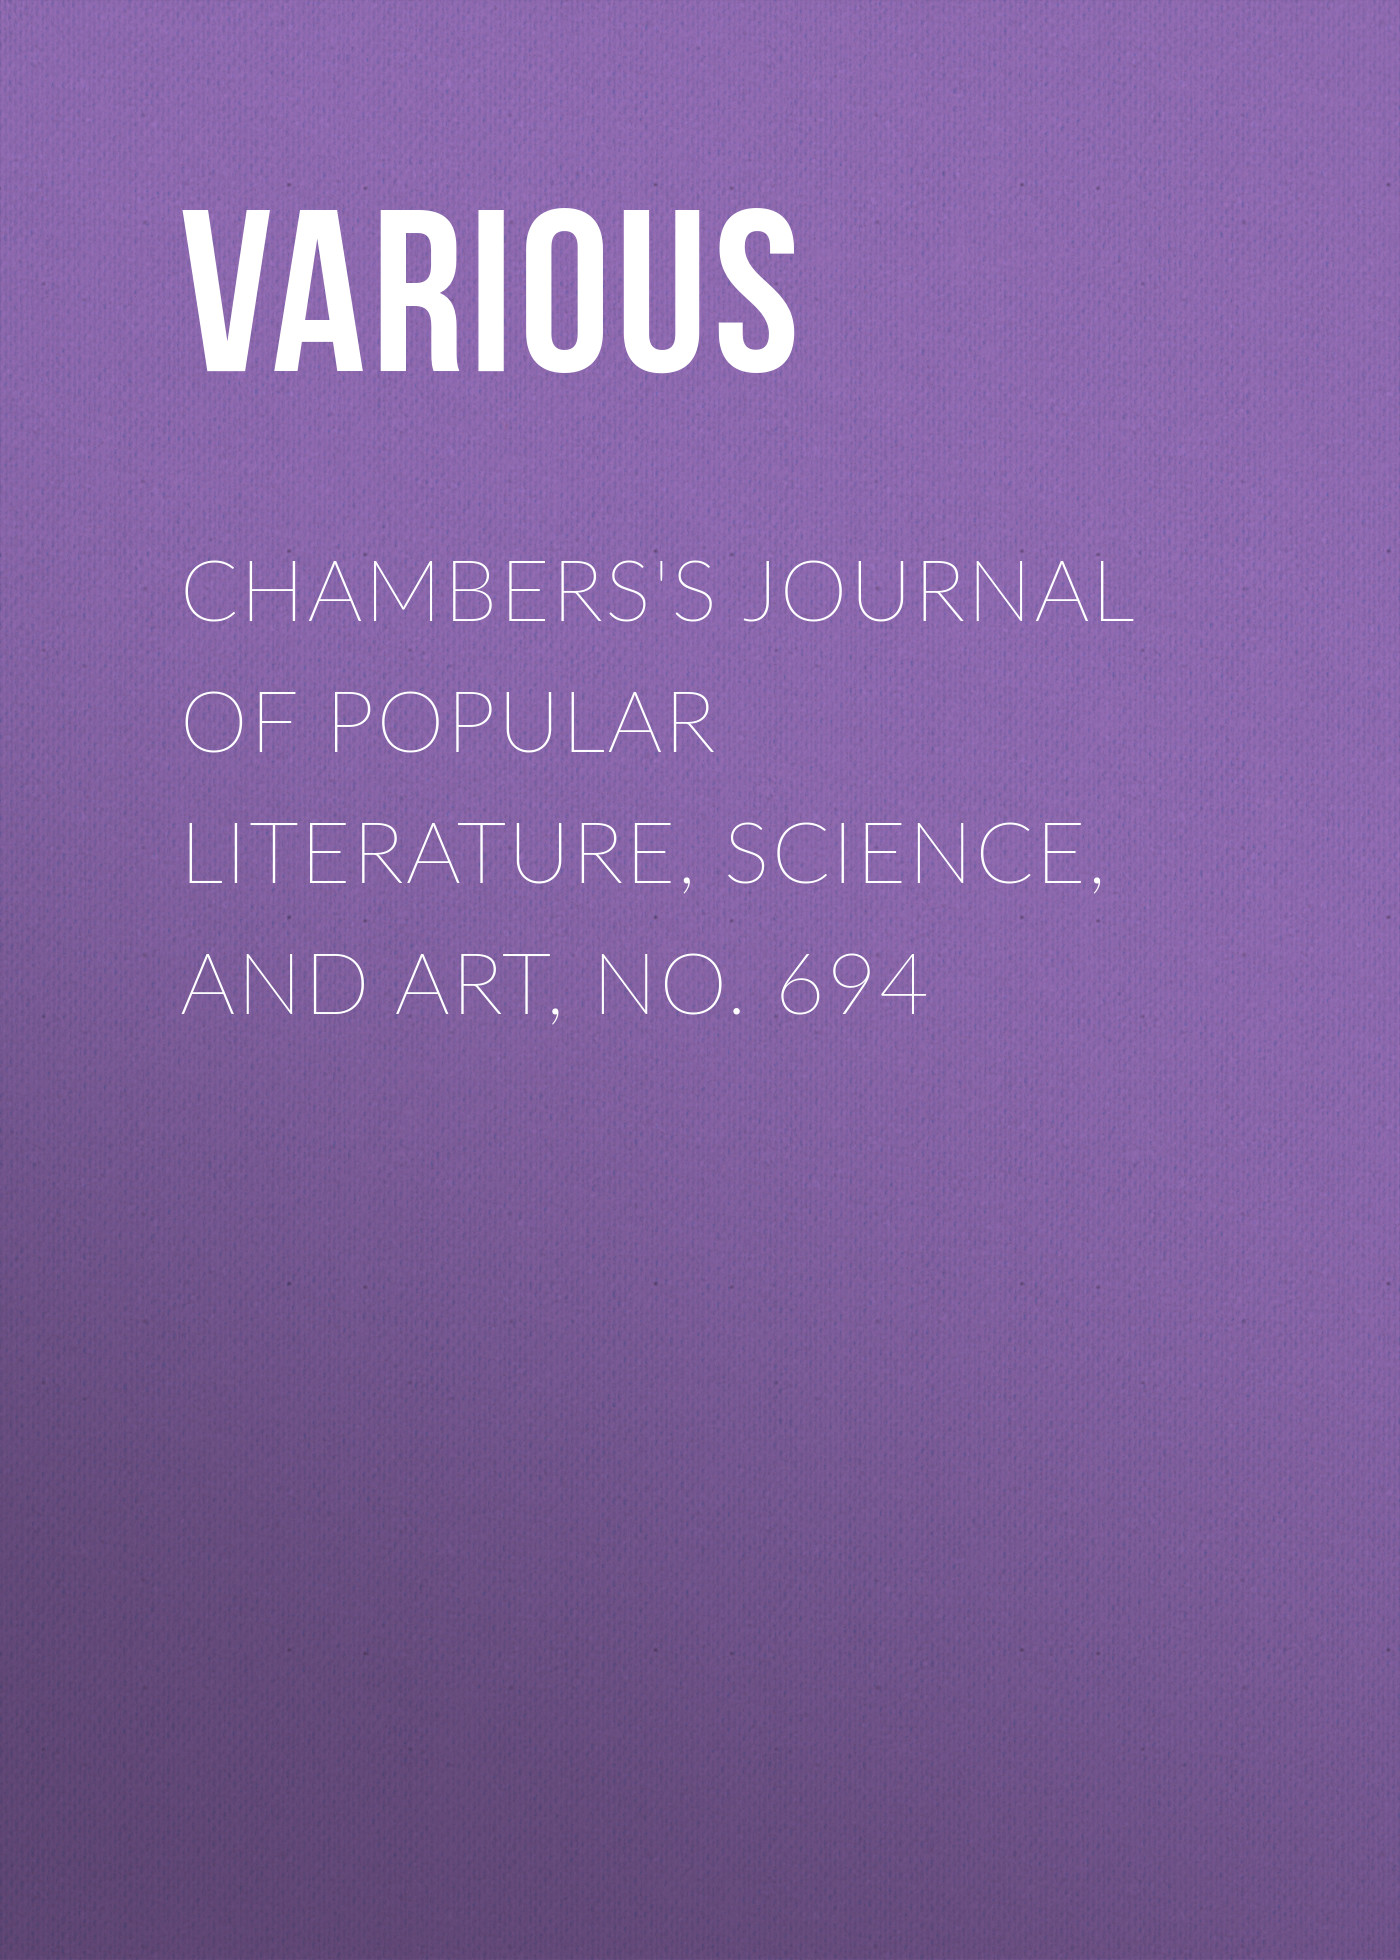 Various Chambers's Journal of Popular Literature, Science, and Art, No. 694 various chambers s journal of popular literature science and art no 699